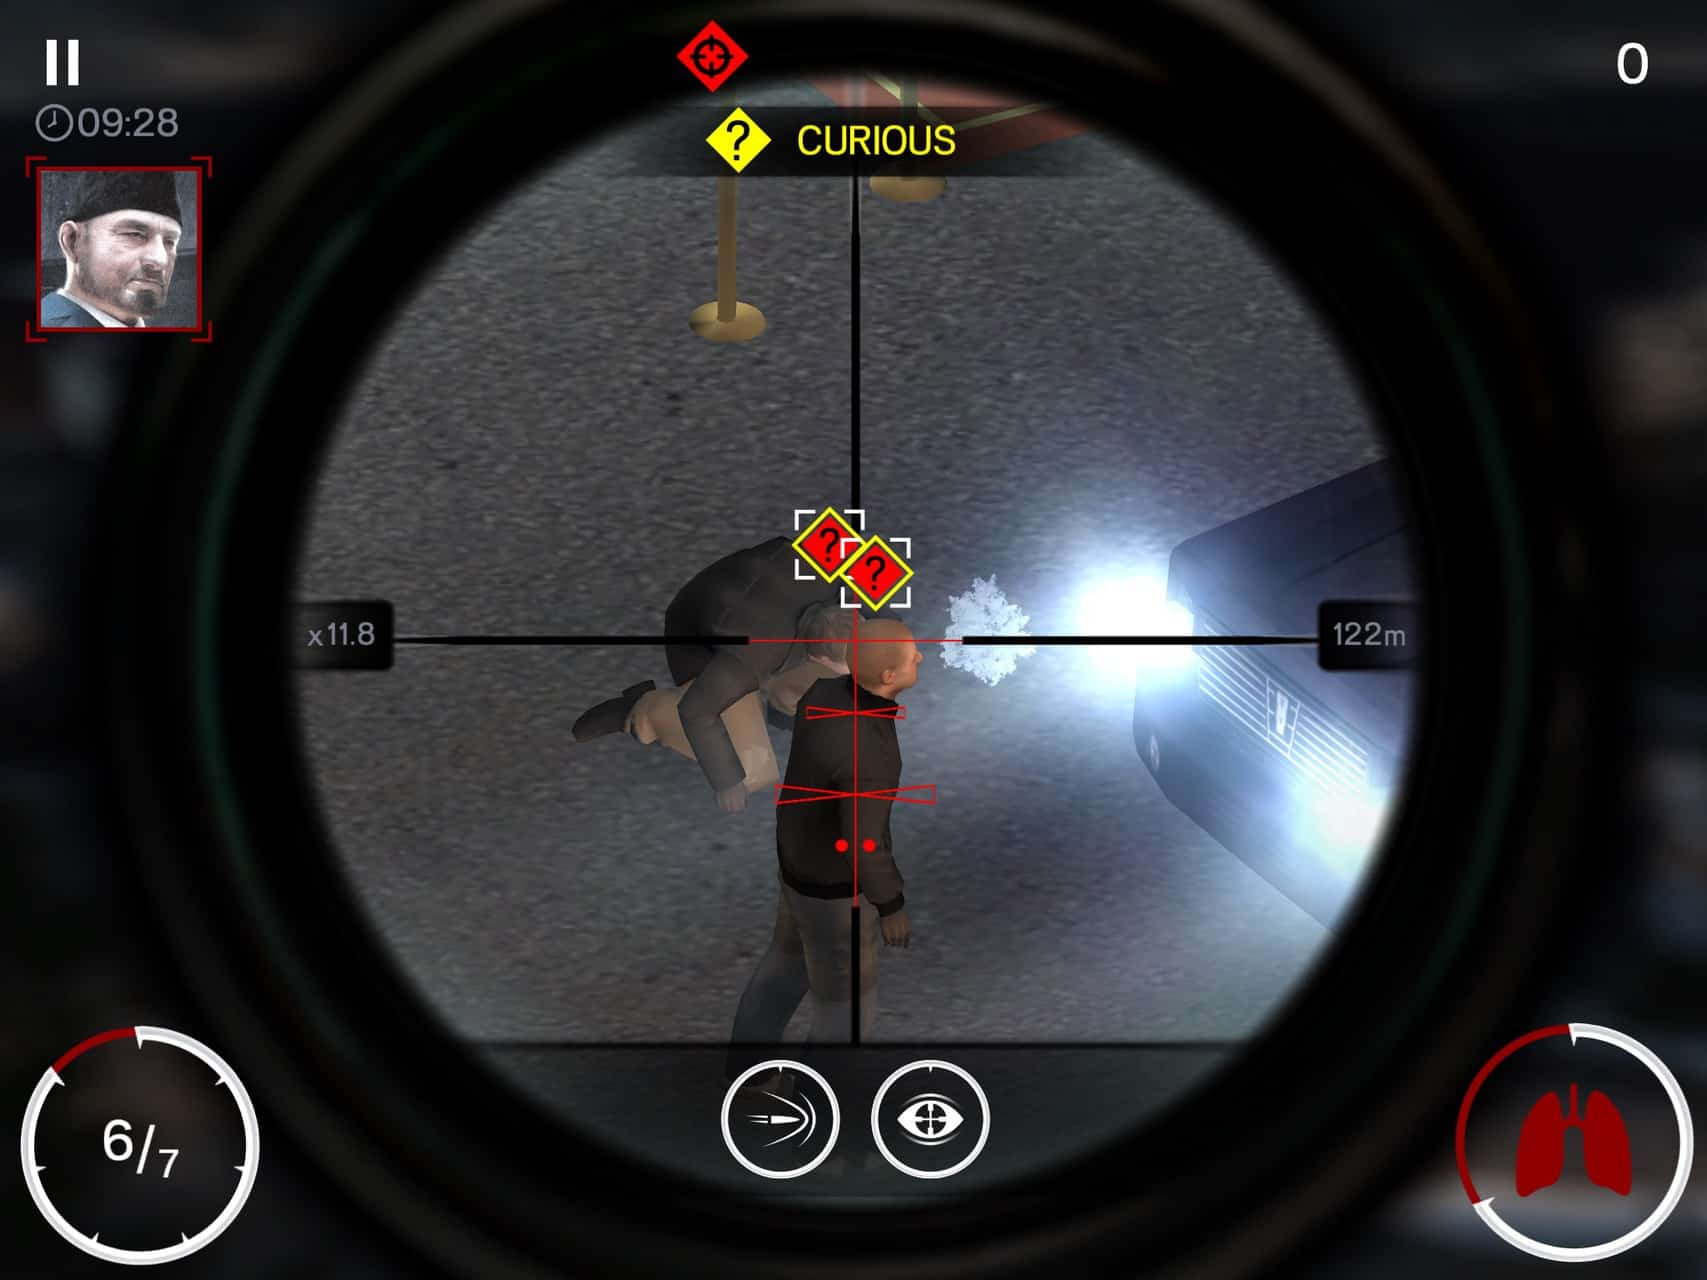 Hitman Sniper Android Wallpaper You Score Points During The